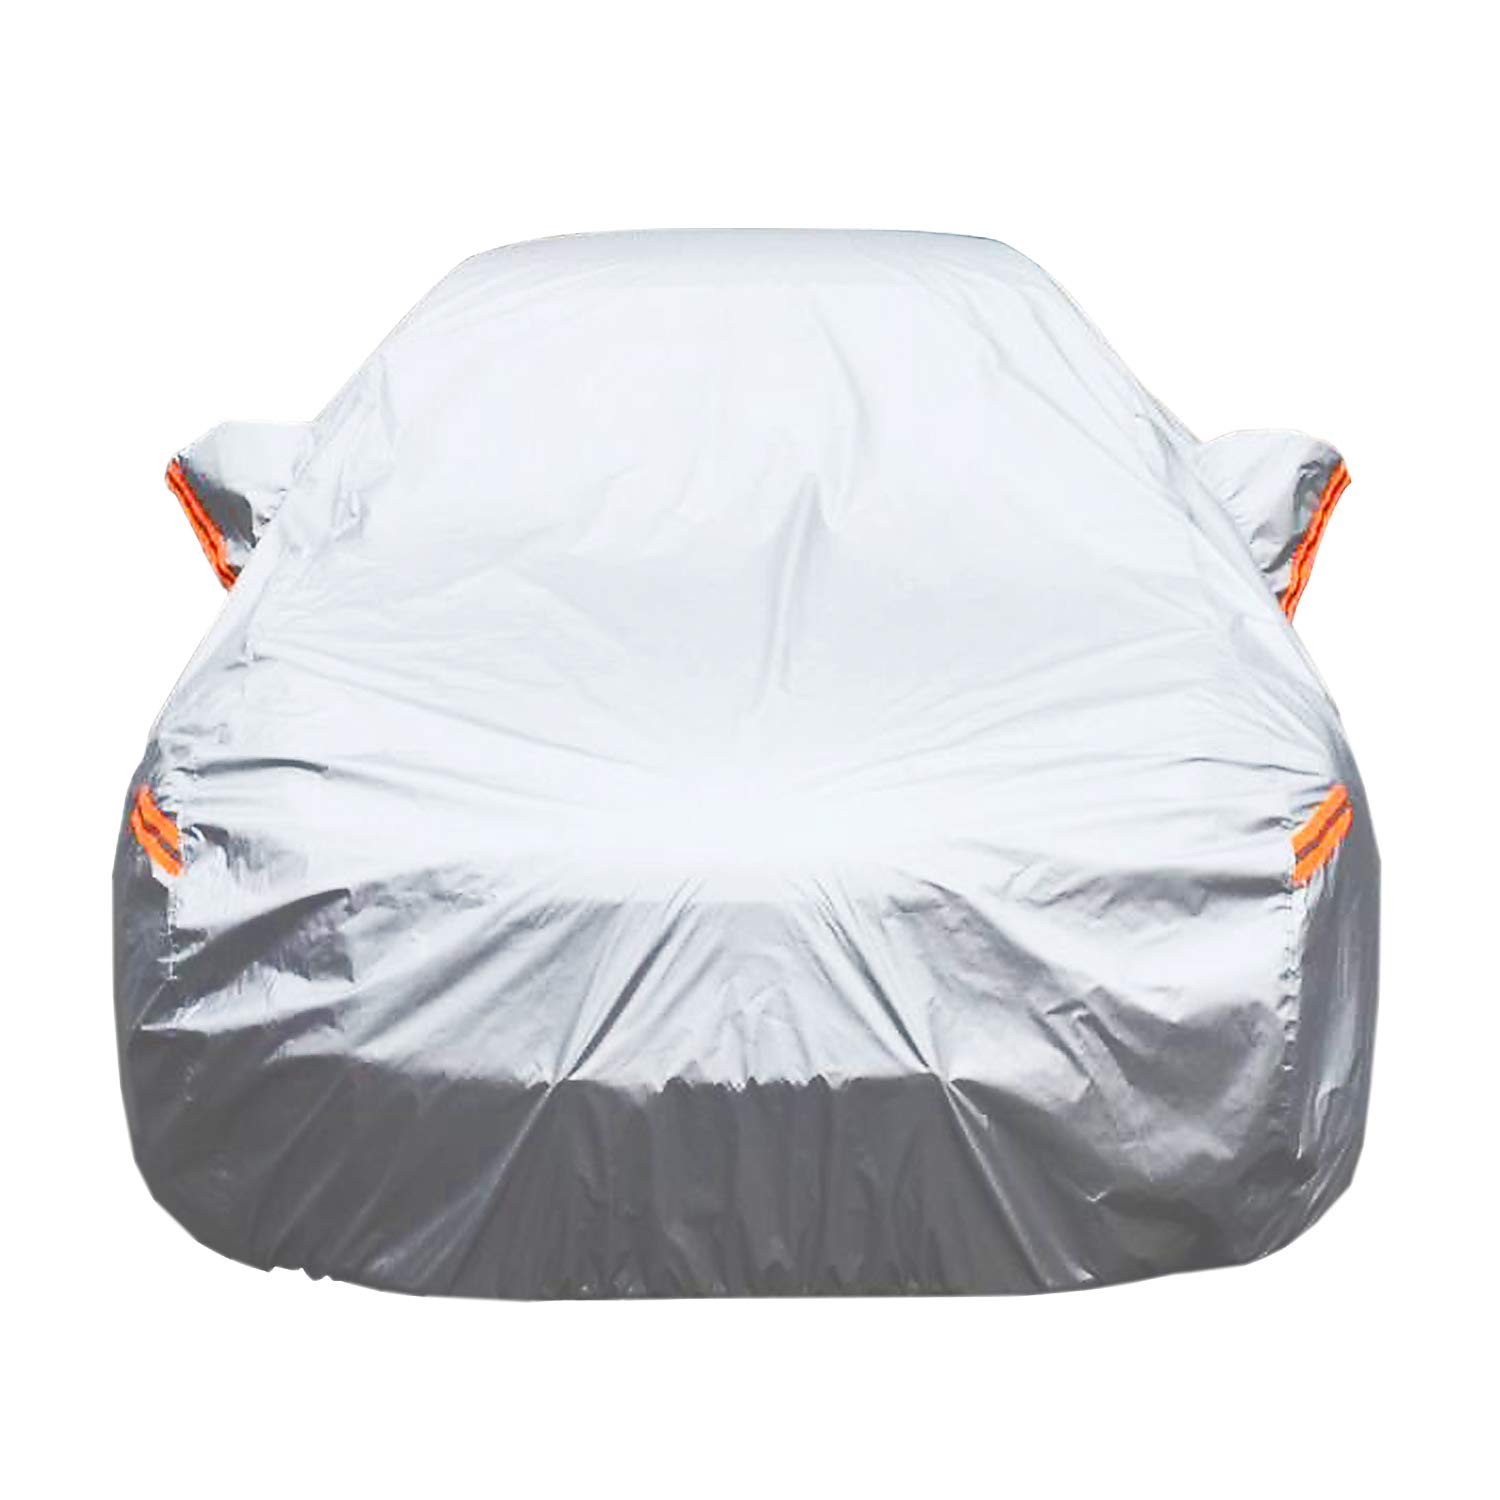 Universal Car Cover for Sedan, Waterproof, Dustproof, Snowproof All Weather, Effectively Reduce Temperature Universal UV Waterproof Full Car Cover Outdoor Auto Sun Protection Covers (191'Lx76'Wx56'H) CARBABA